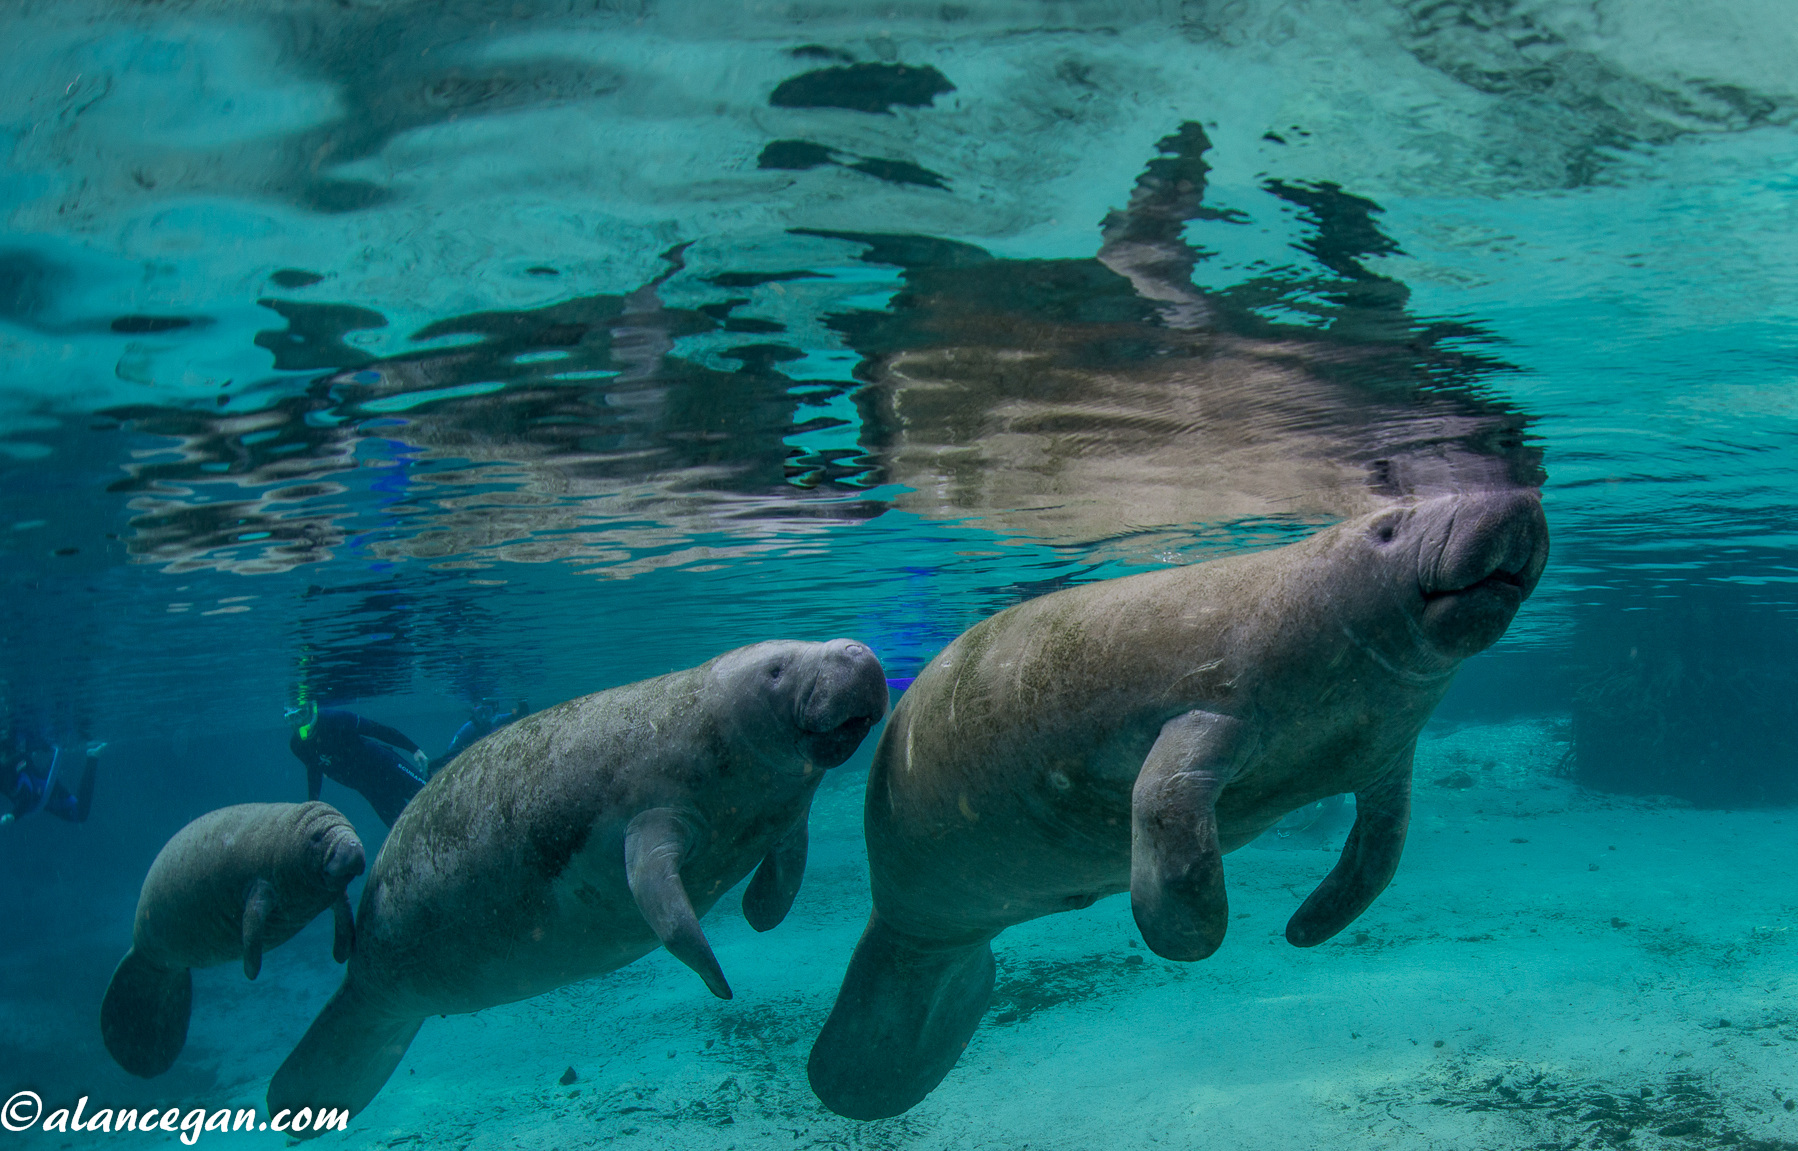 Underwater photograph of Manatees or Sea Cows while snorkeling at Crystal River in Florida by Alan C Egan